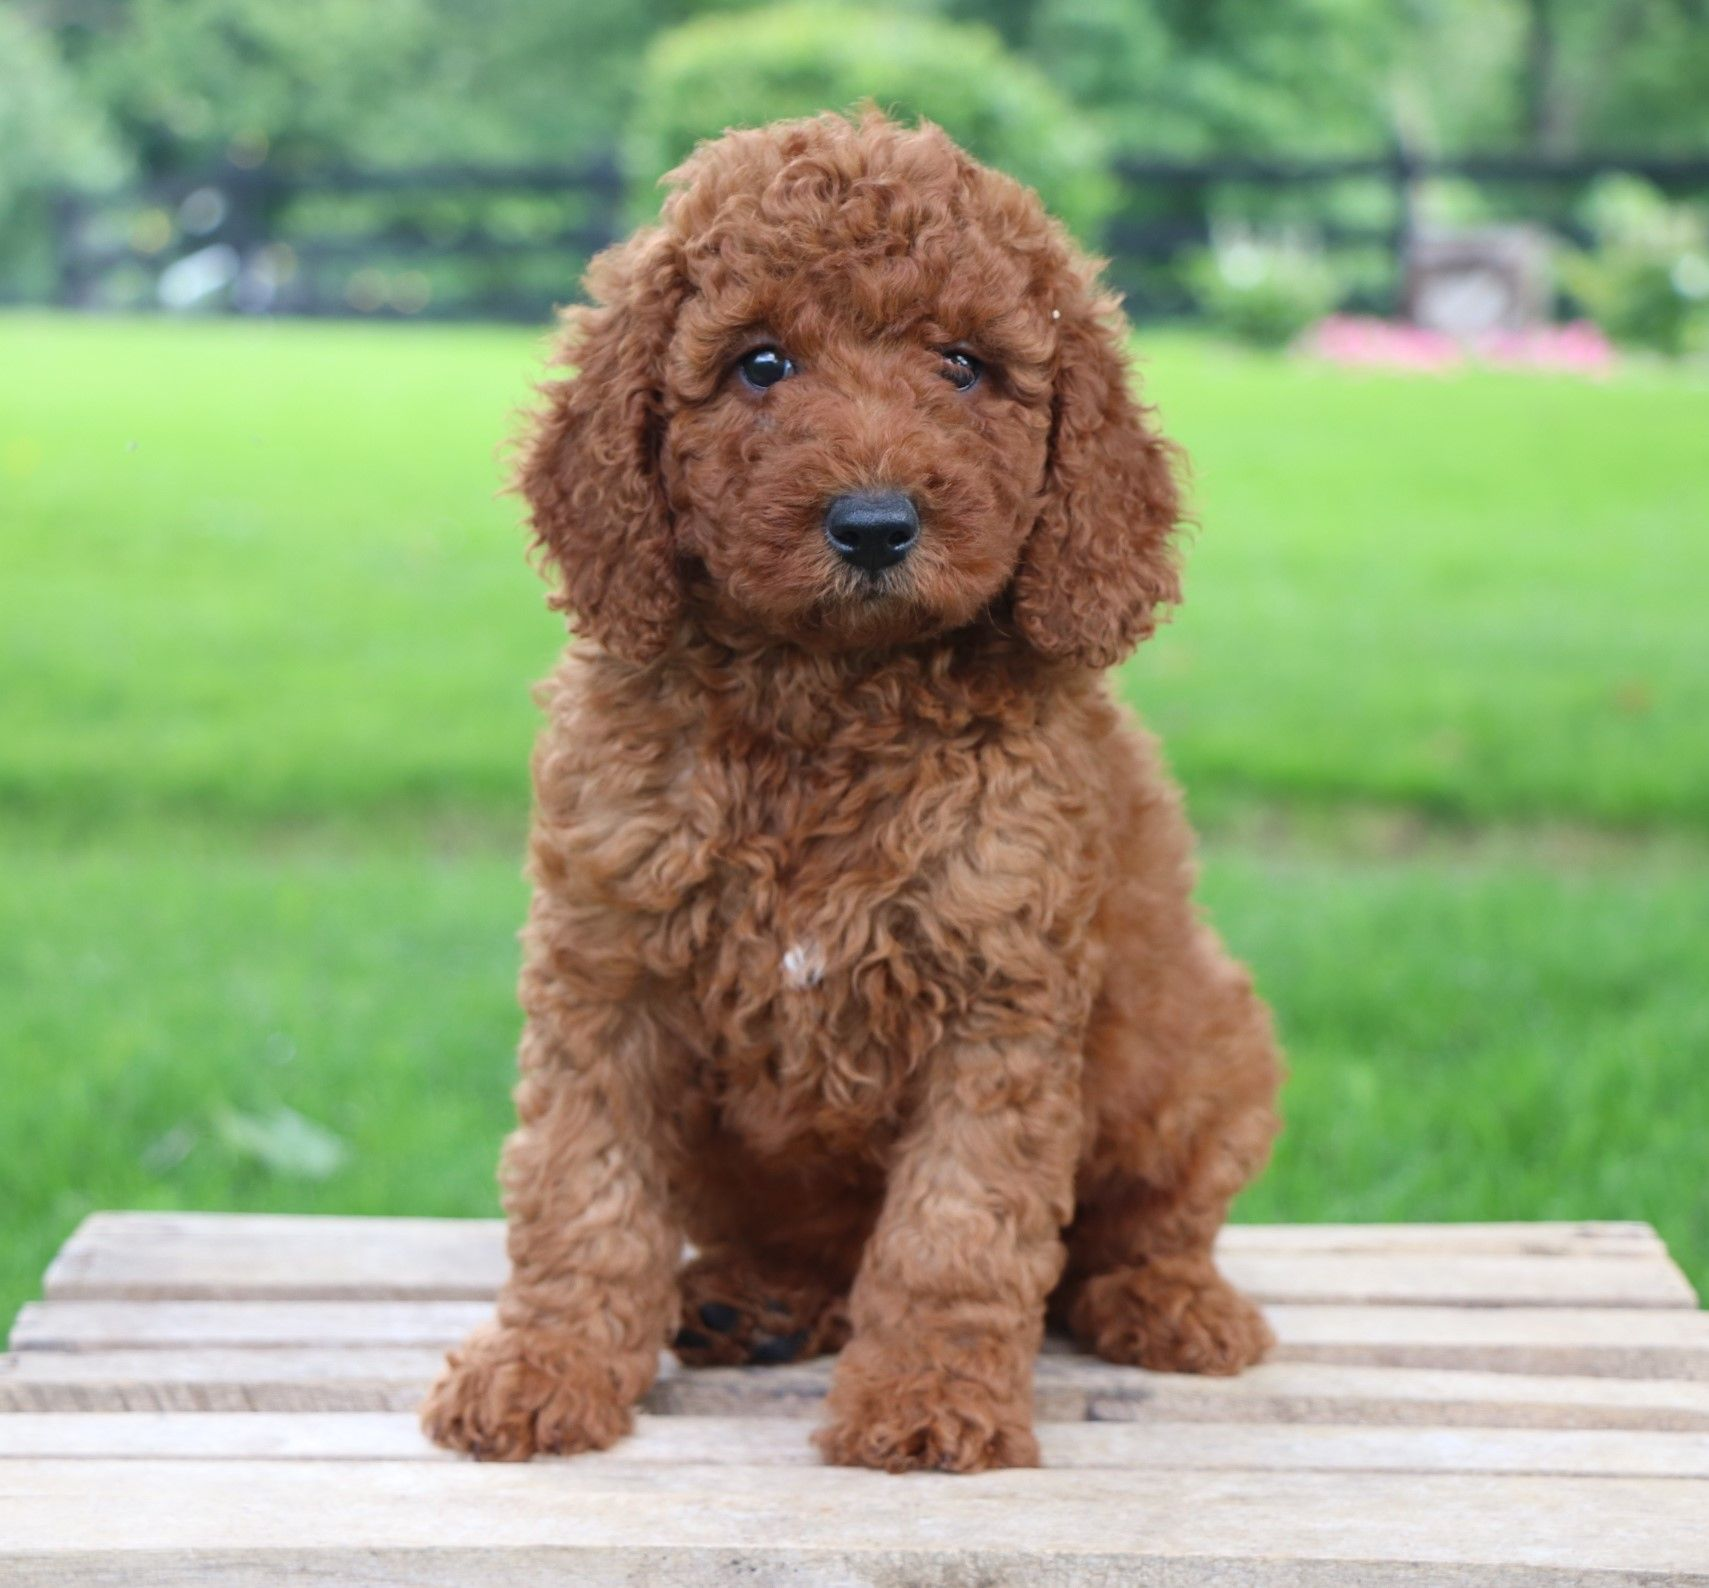 Red Poodle Puppies For Sale Uk 2021